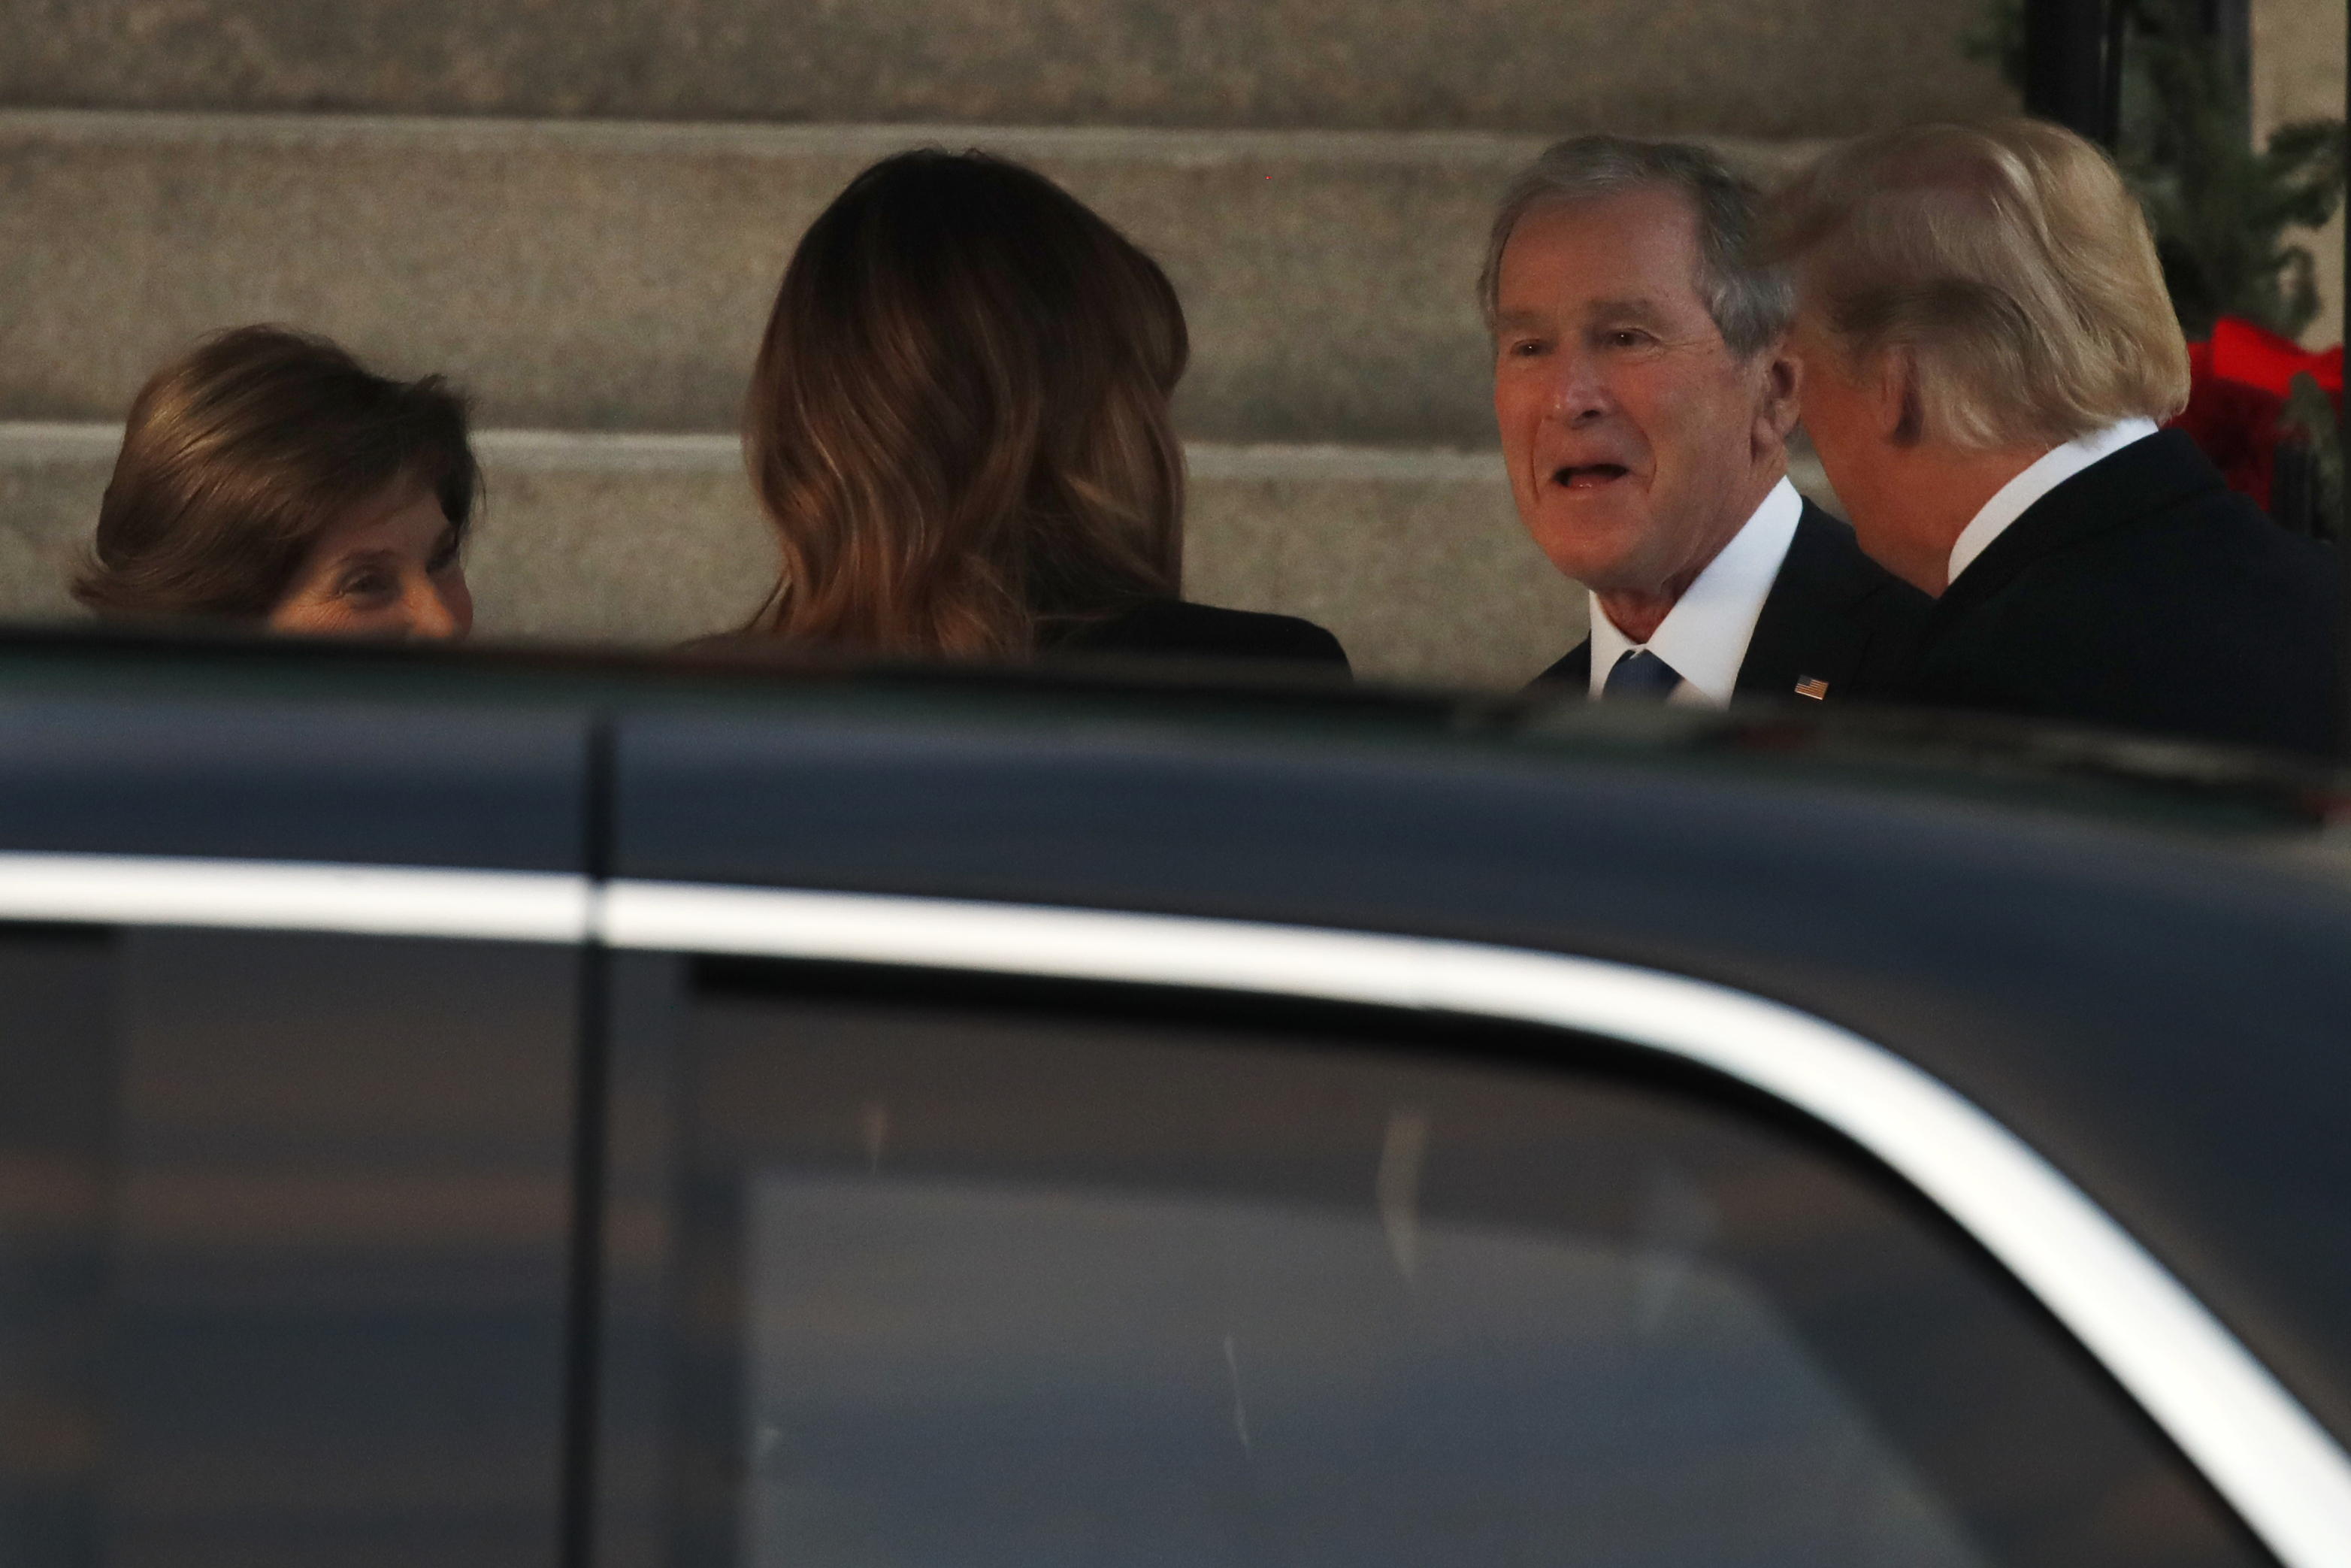 President Donald Trump, right, and first lady Melania Trump, arrive at Blair House and are greeted by former President George W. Bush and former first lady Laura Bush, Tuesday, Dec. 4, 2018, in Washington. (AP Photo/Jacquelyn Martin)